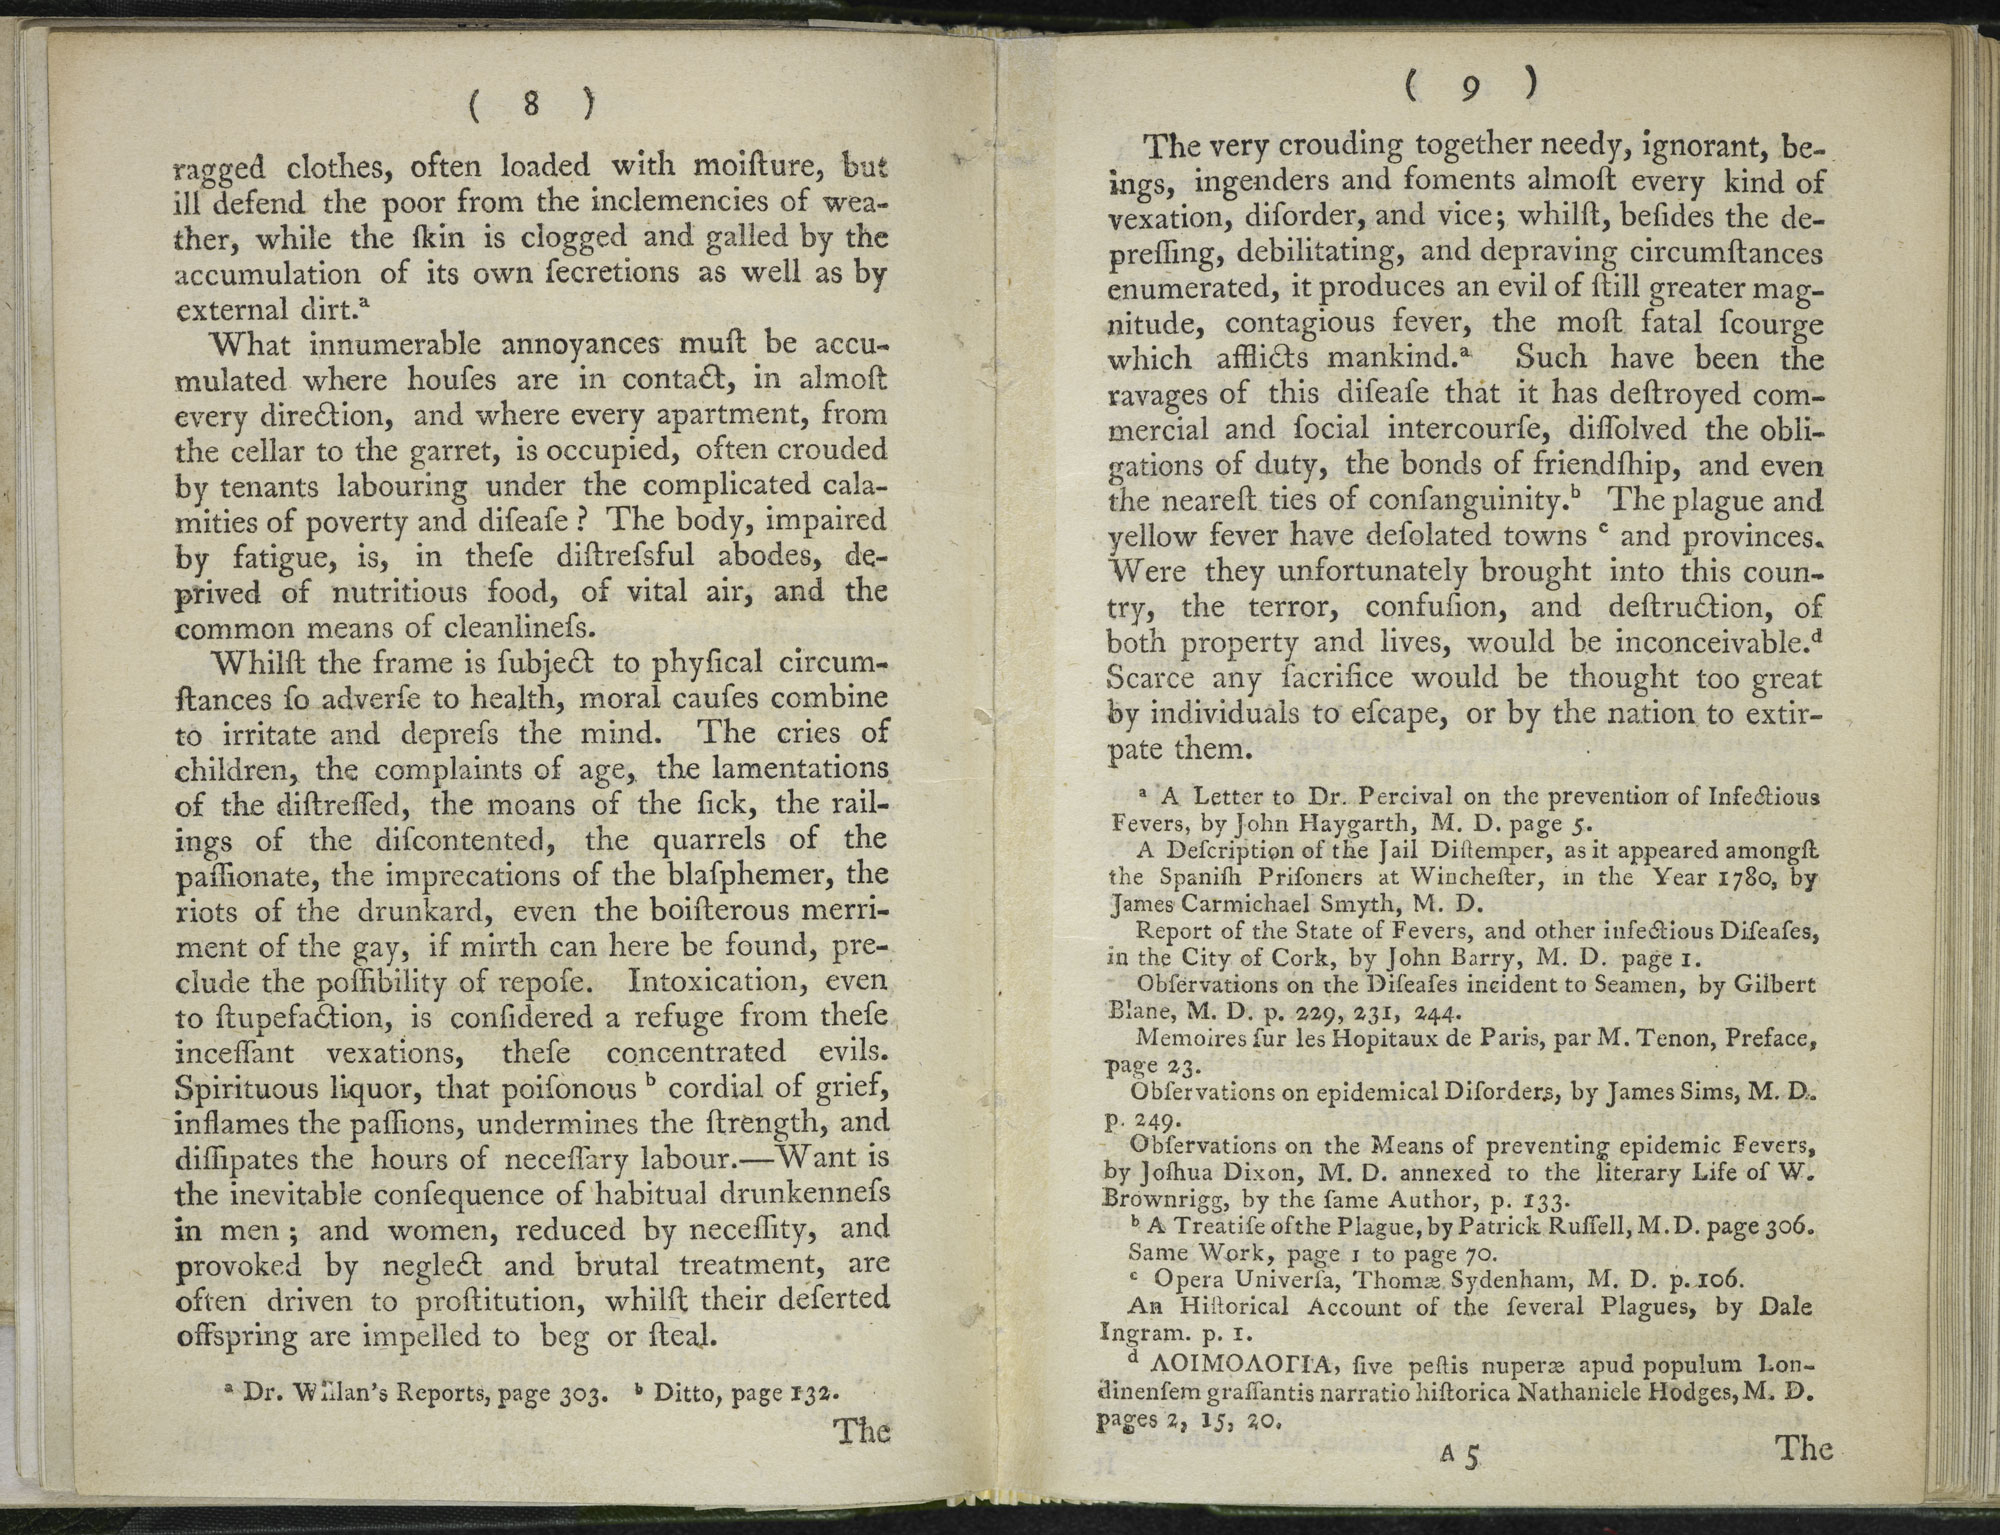 Remarks on the Necessity and means of suppressing Contagious fever in the Metropolis [page: 8-9]